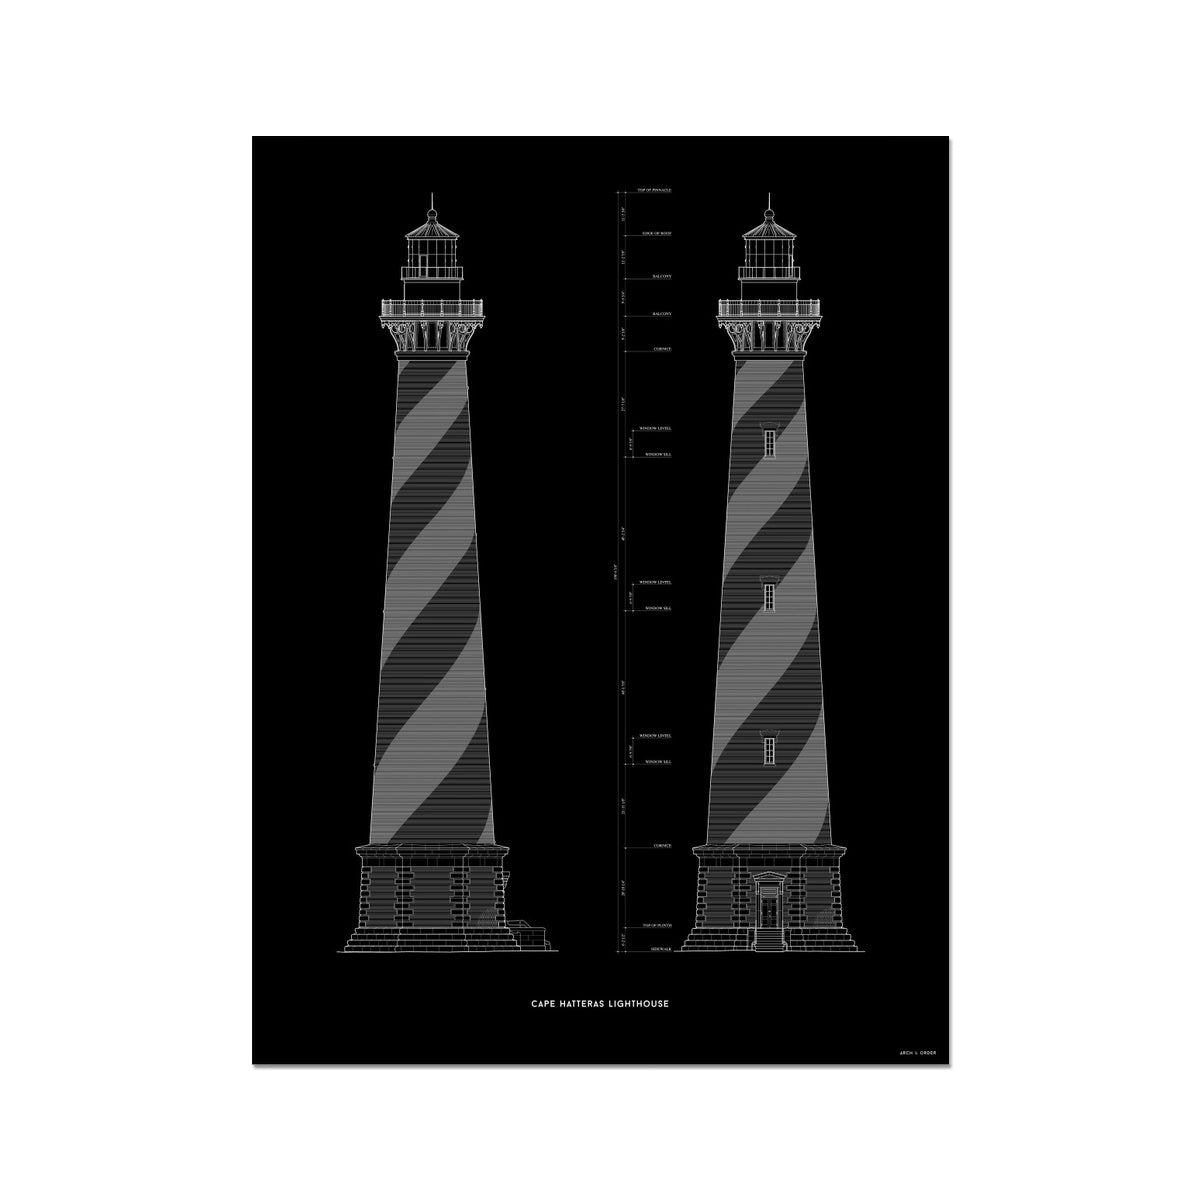 Cape Hatteras Lighthouse - North and East Elevations - Black -  Etching Paper Print